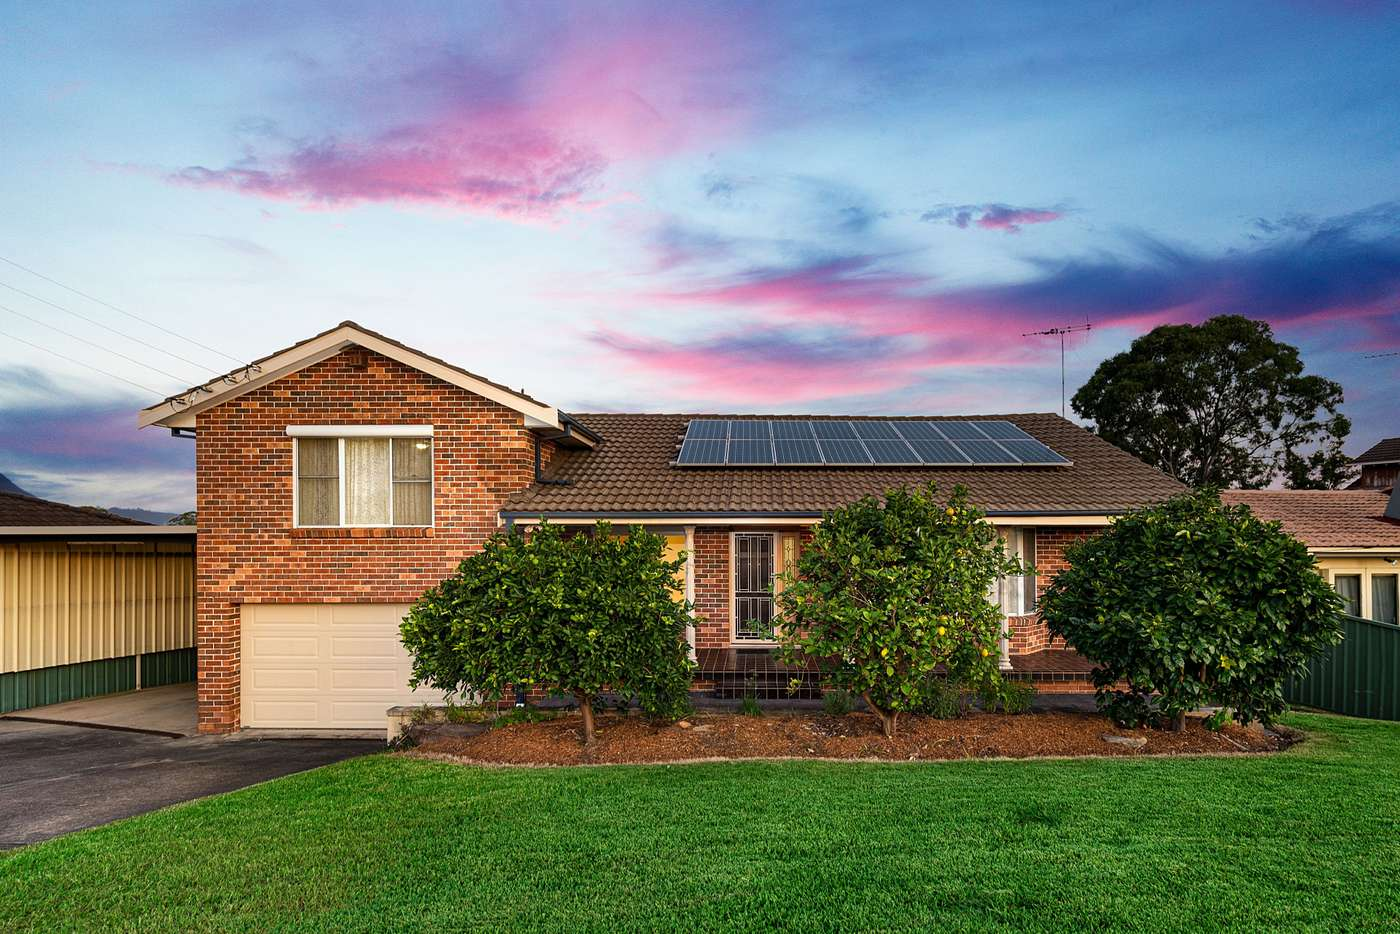 Main view of Homely house listing, 35 Topaz Crescent, Seven Hills NSW 2147